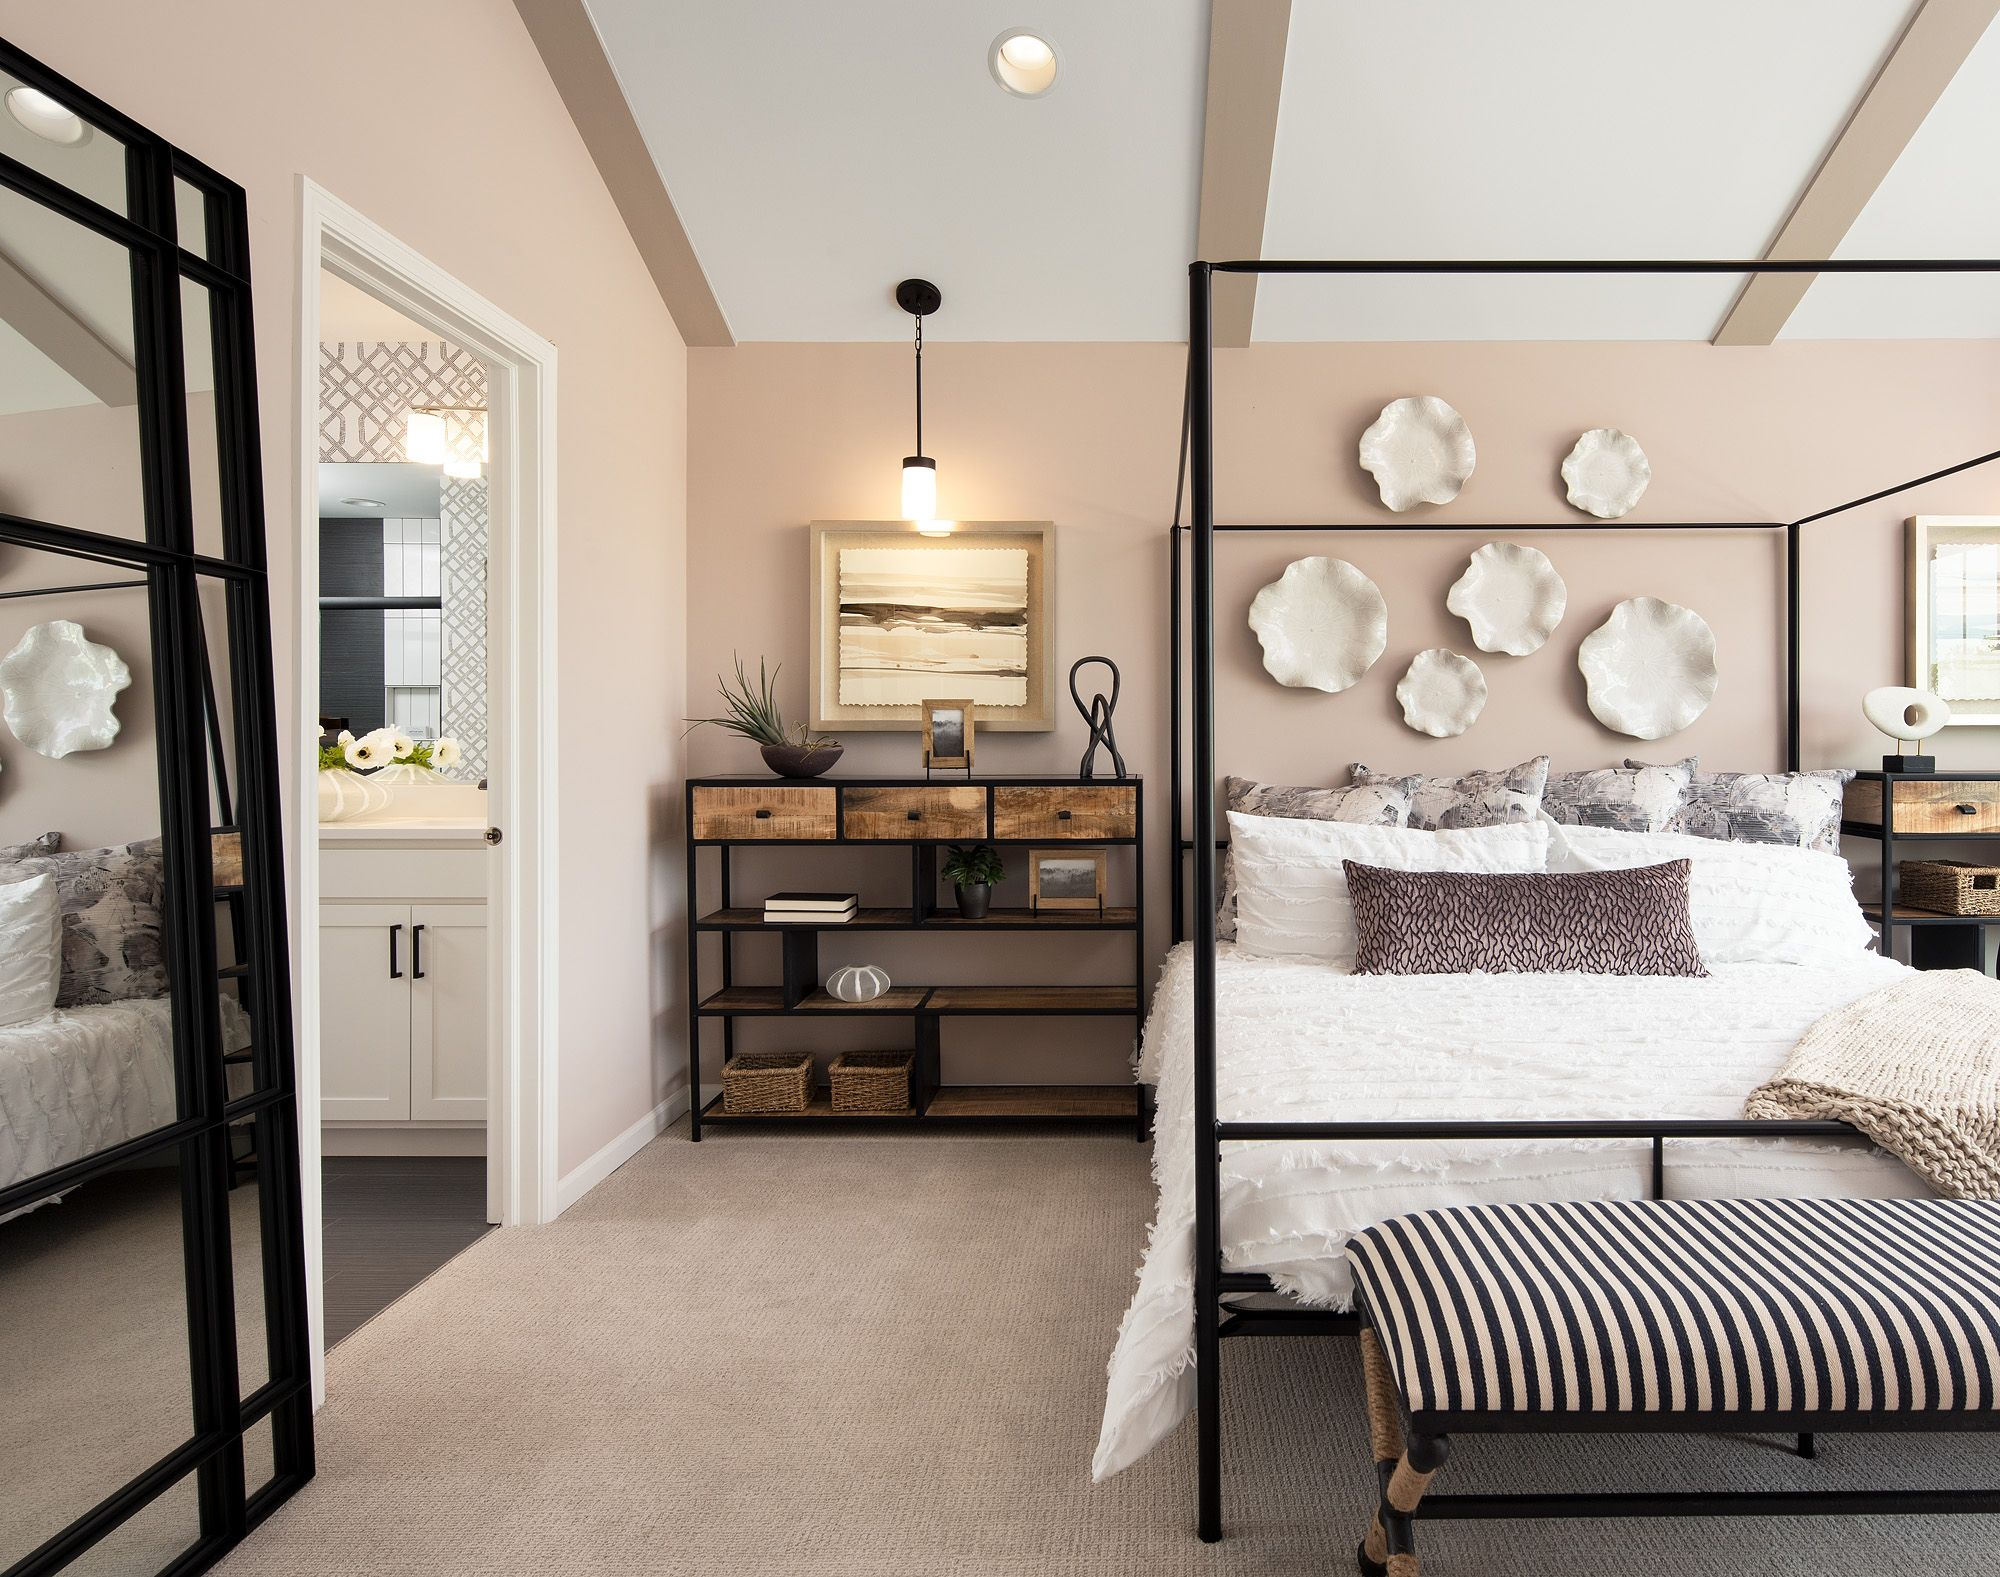 Bedroom featured in The Berkley By Lexington Homes in Chicago, IL